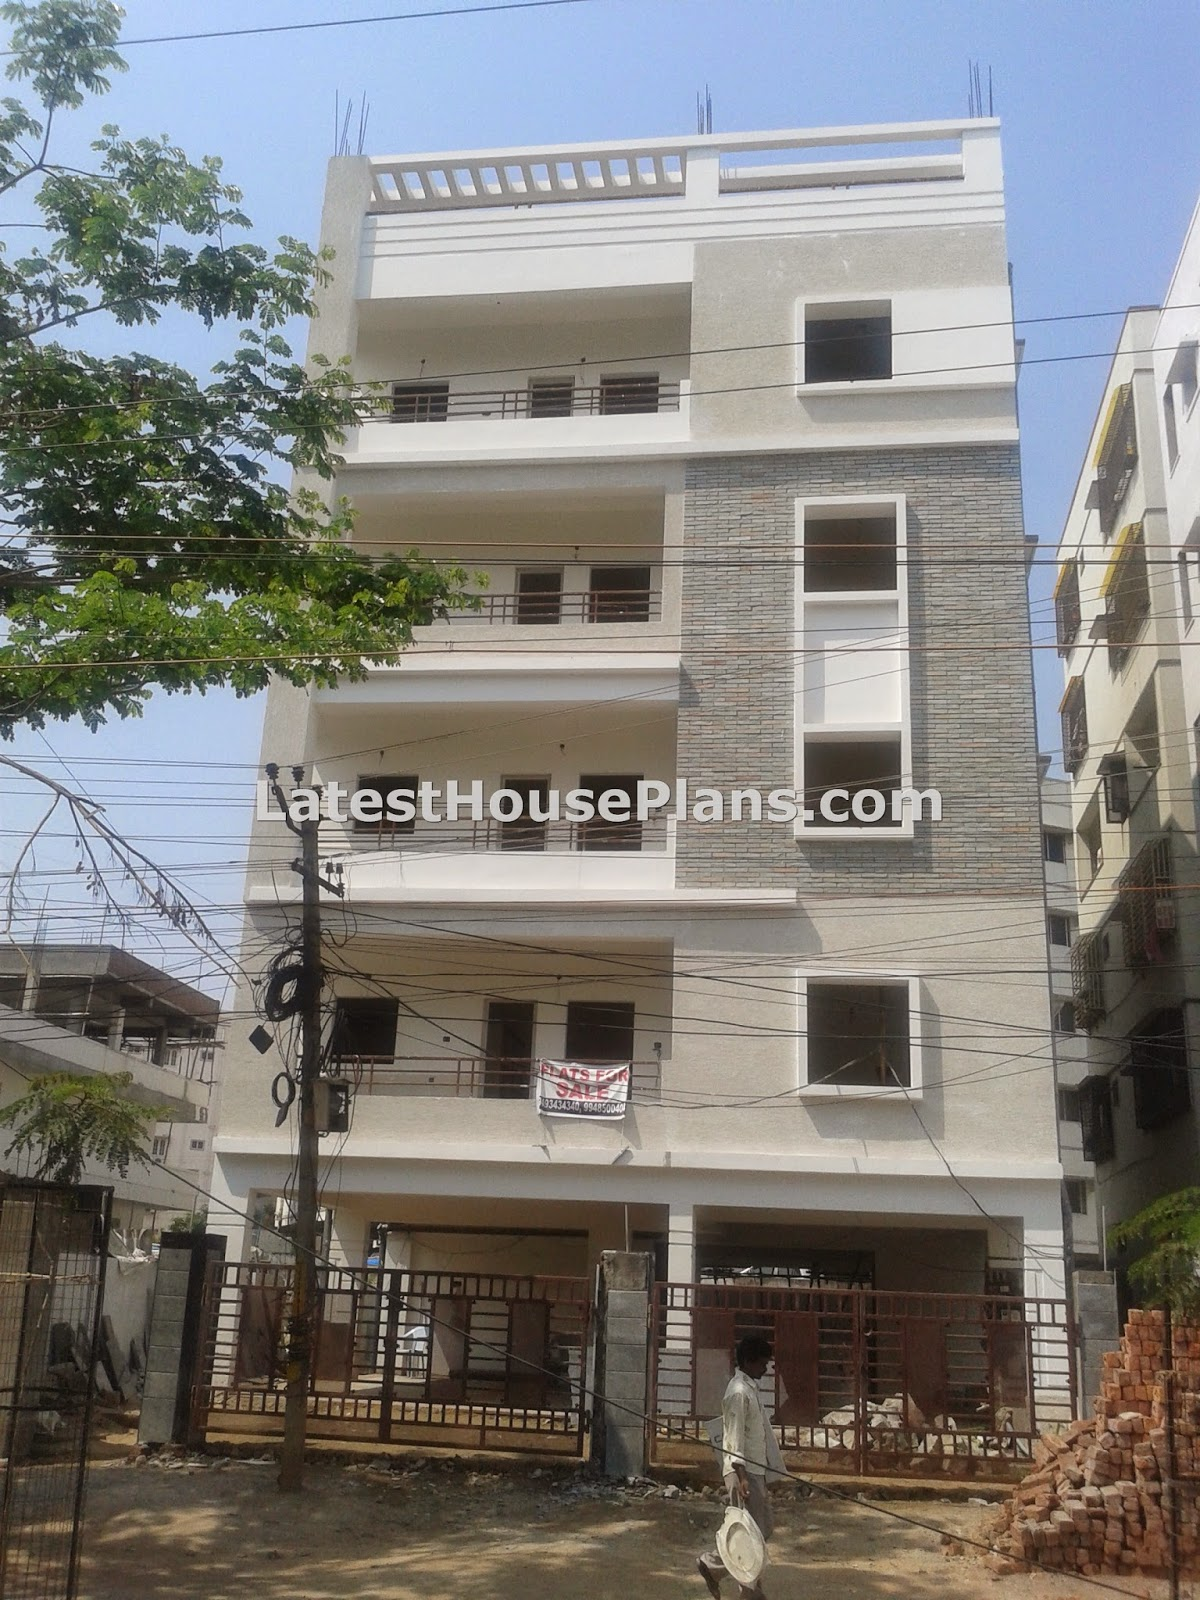 Apartment Building Elevation small four floor apartment elevations in hyderabad | latest house